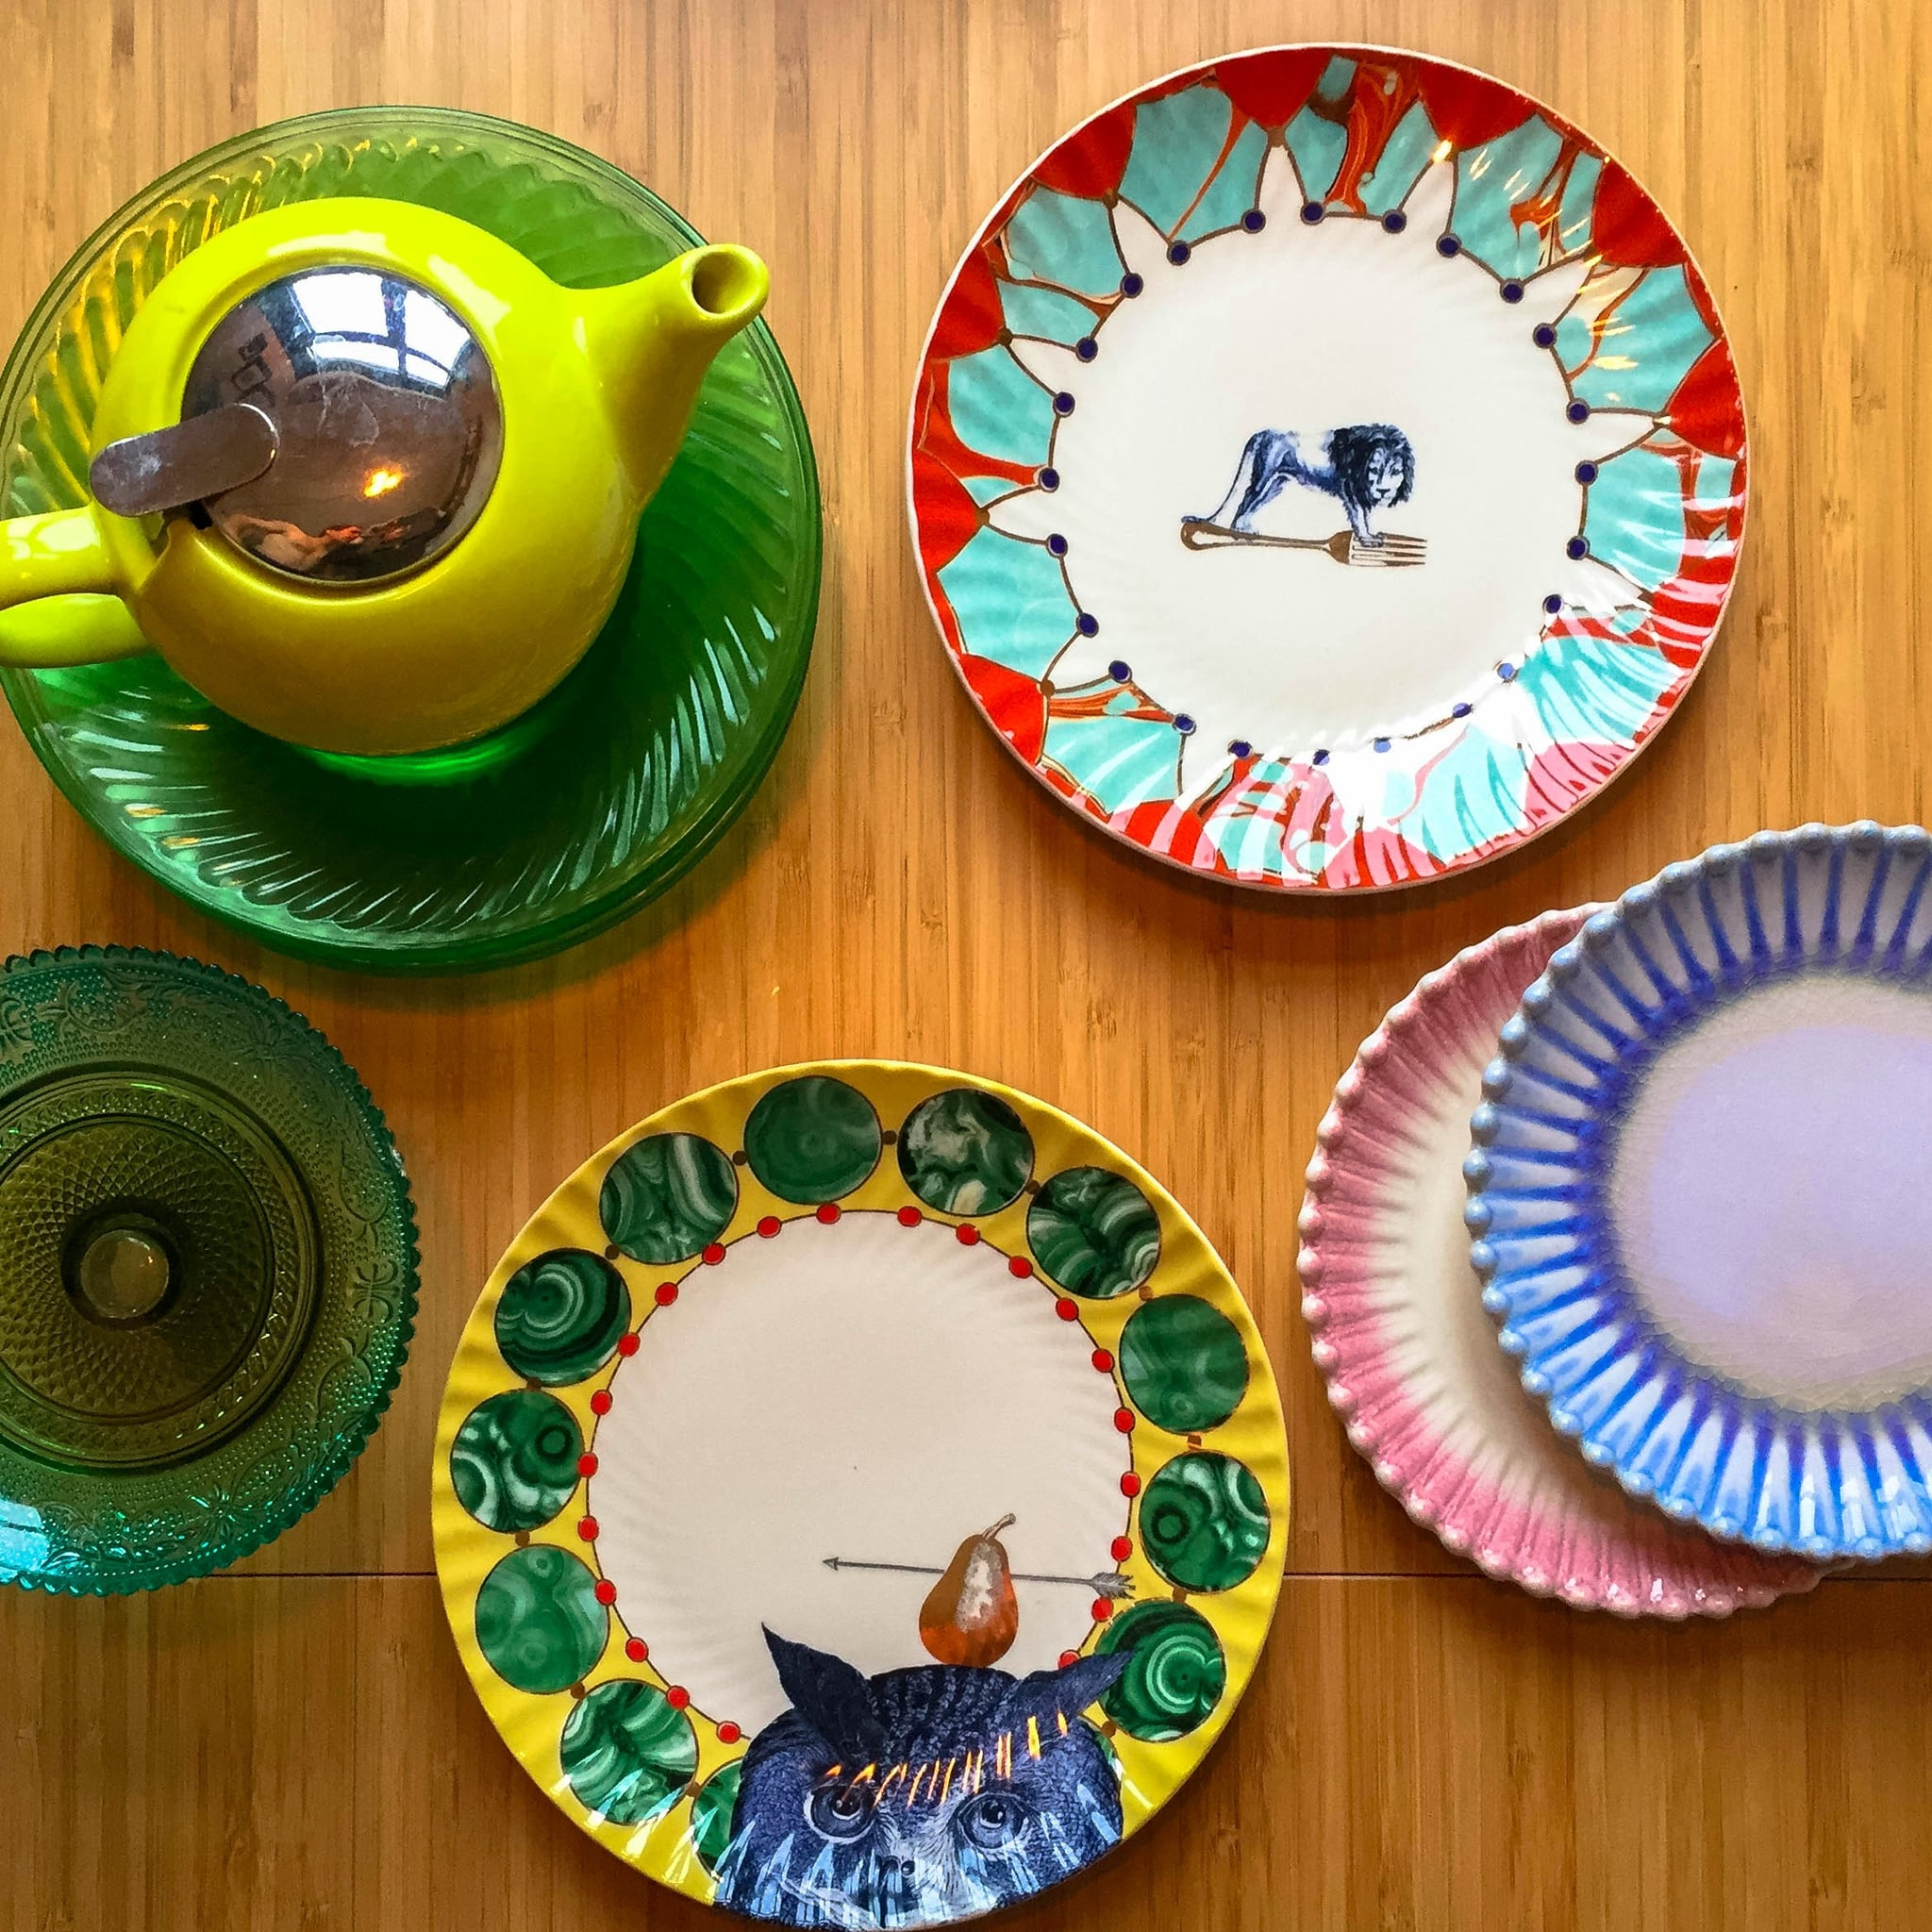 How to Find Home Goods at Thrift Stores | POPSUGAR Home